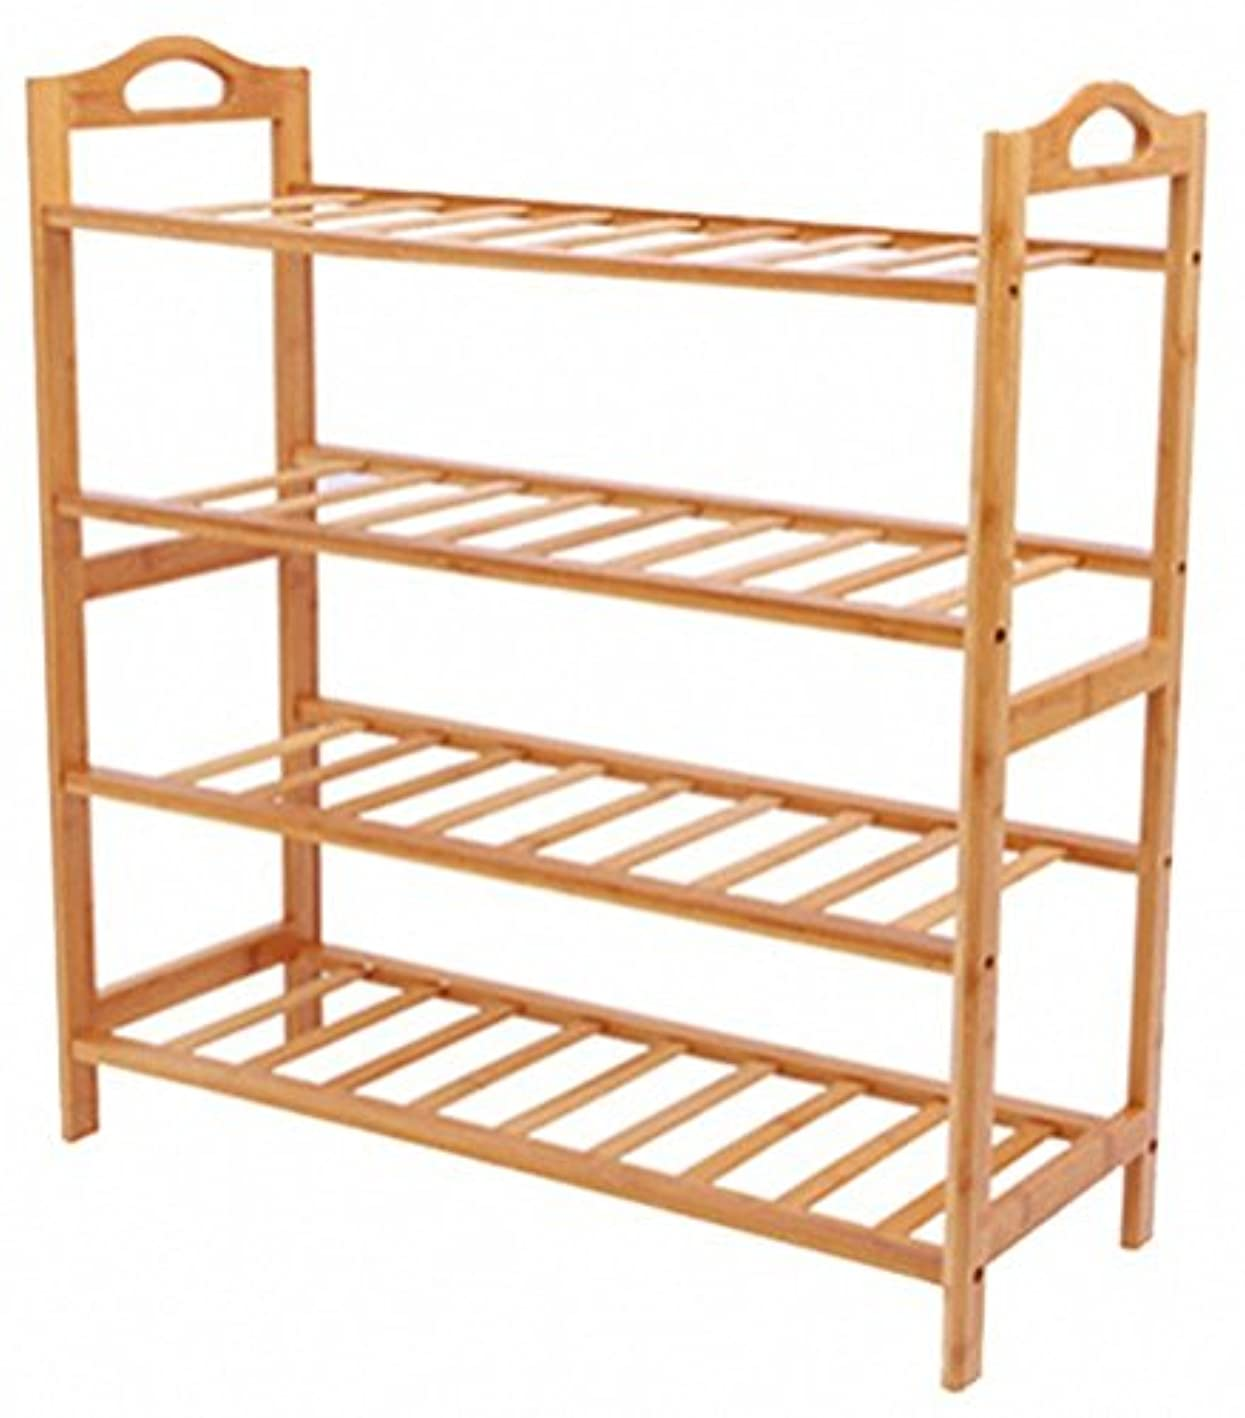 Tooboo Natural Bamboo 4-Tier Shoe Rack Entryway Shoe Shelf Storage Organizer (4-Tier)